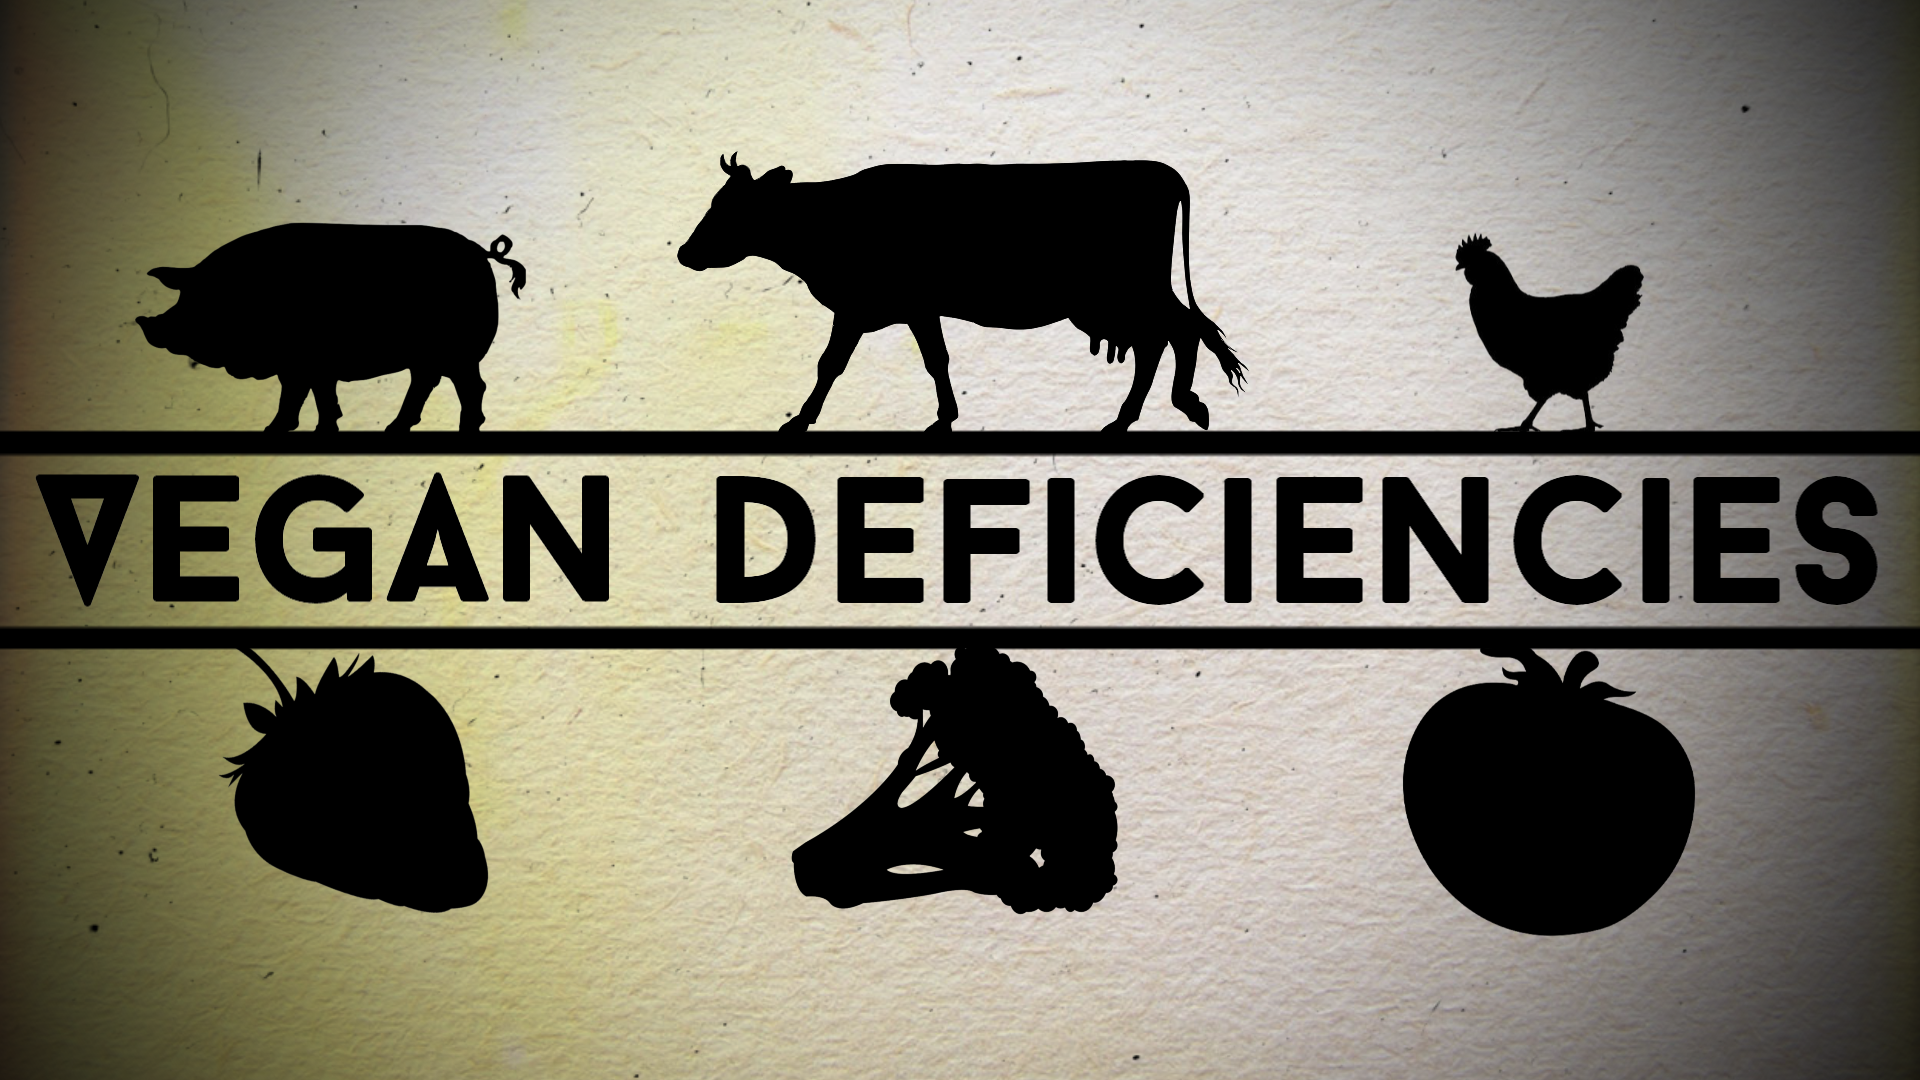 Vegan Deficiencies? | the SCIENCE EXPLAINED!